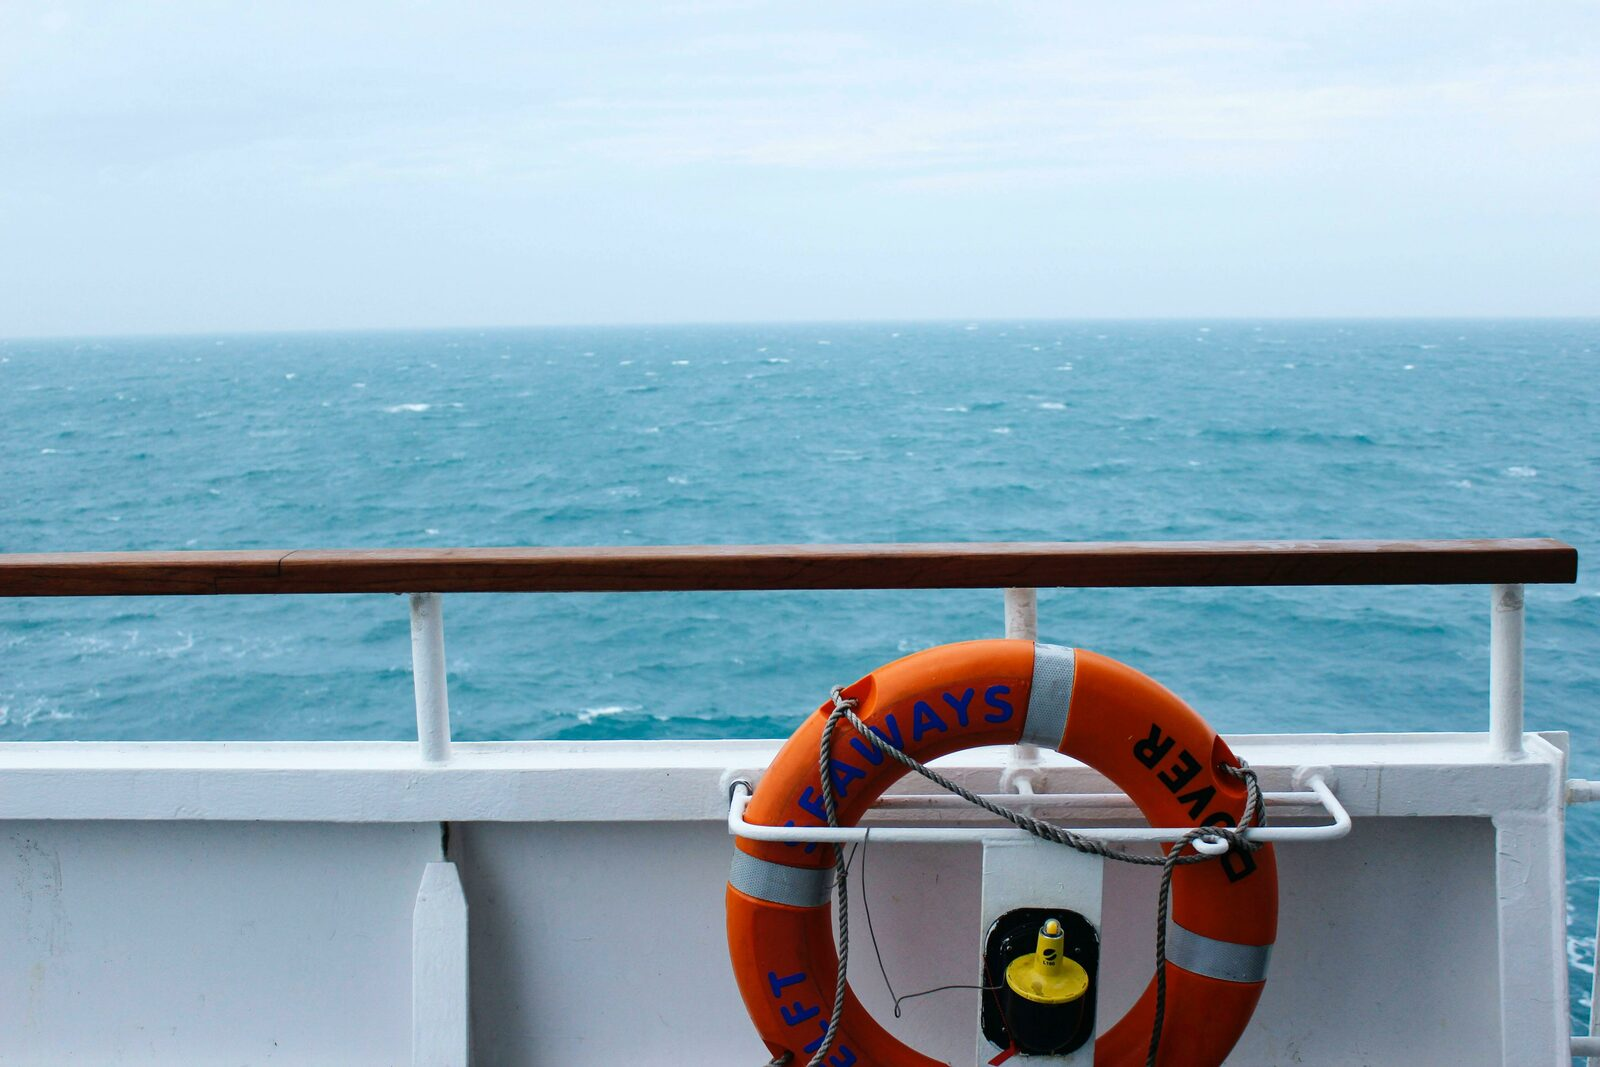 Travelling to France from the UK by ferry